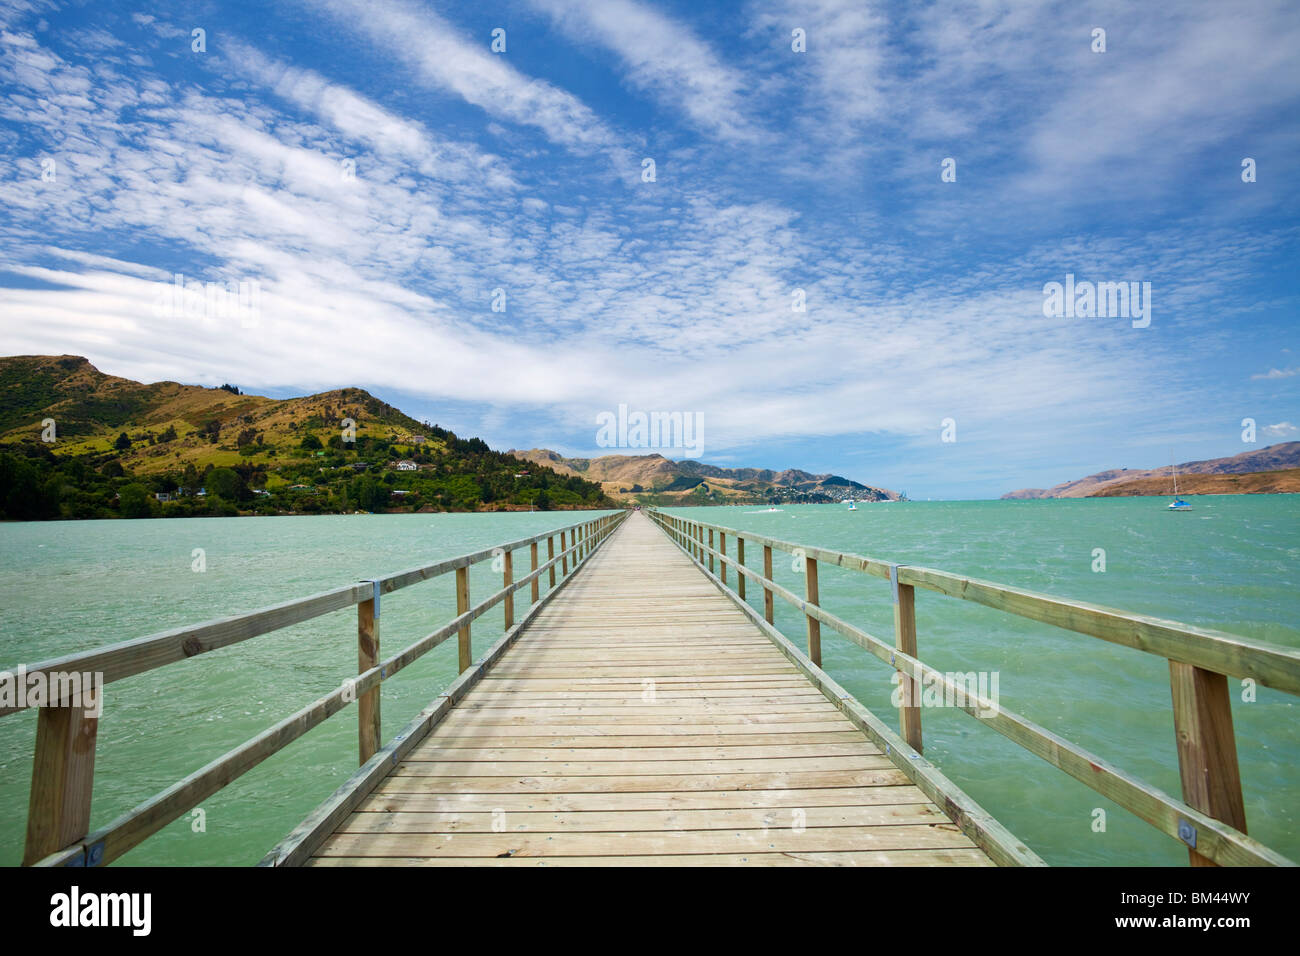 Jetty at Governor's Bay. Christchurch, Canterbury, South Island, New Zealand - Stock Image